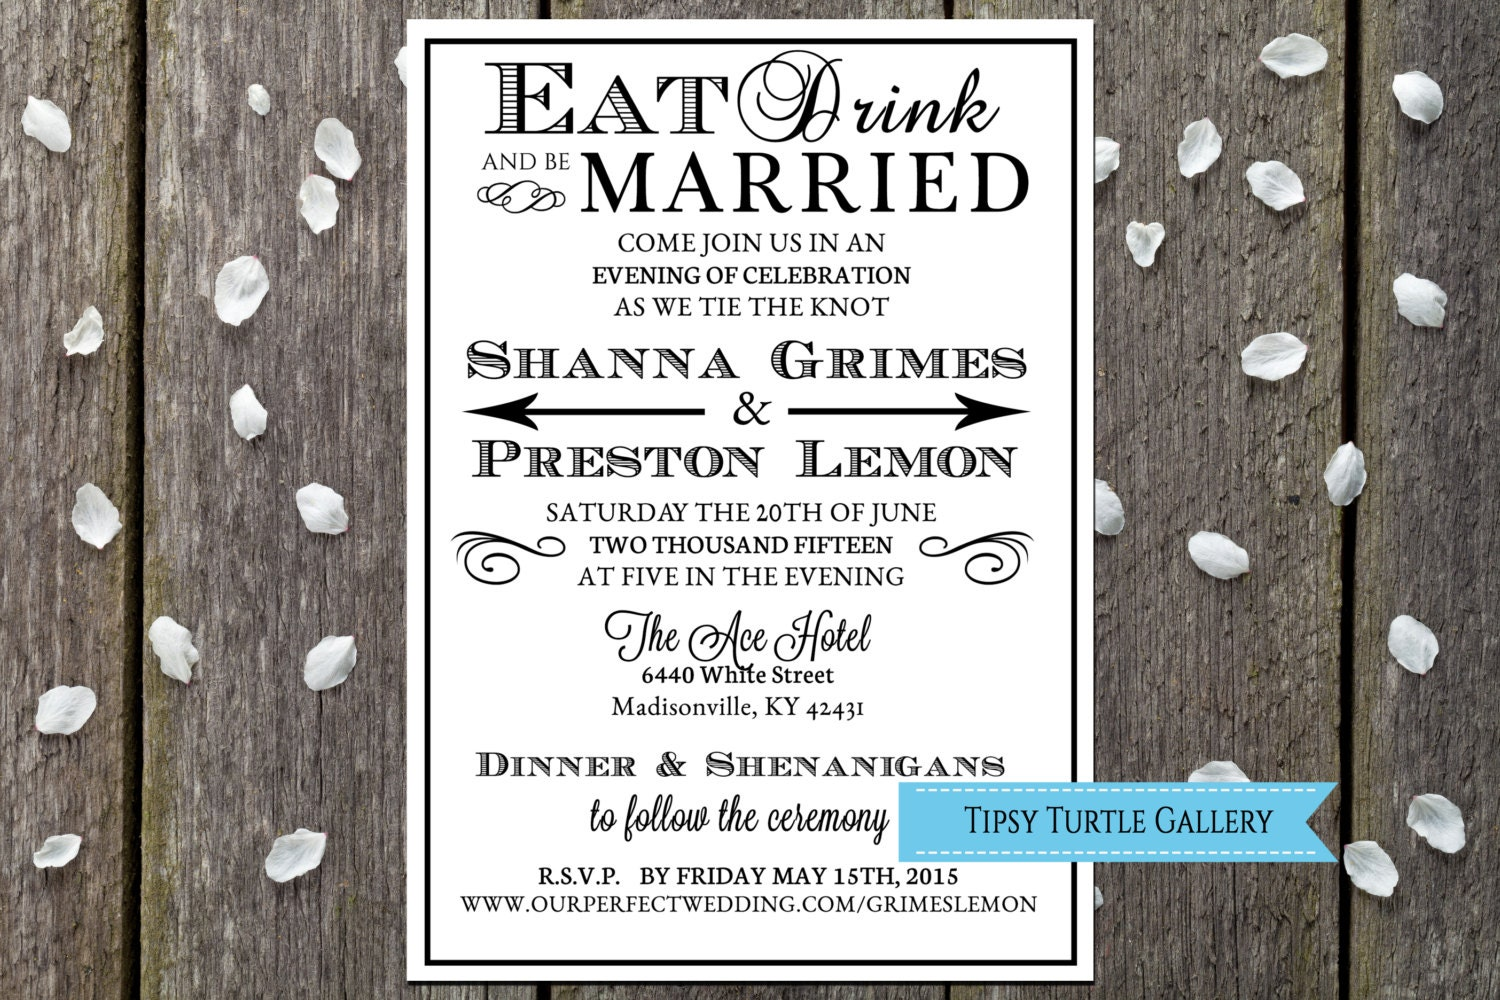 printable wedding invitations, eat drink and be married, bridal, Wedding invitations